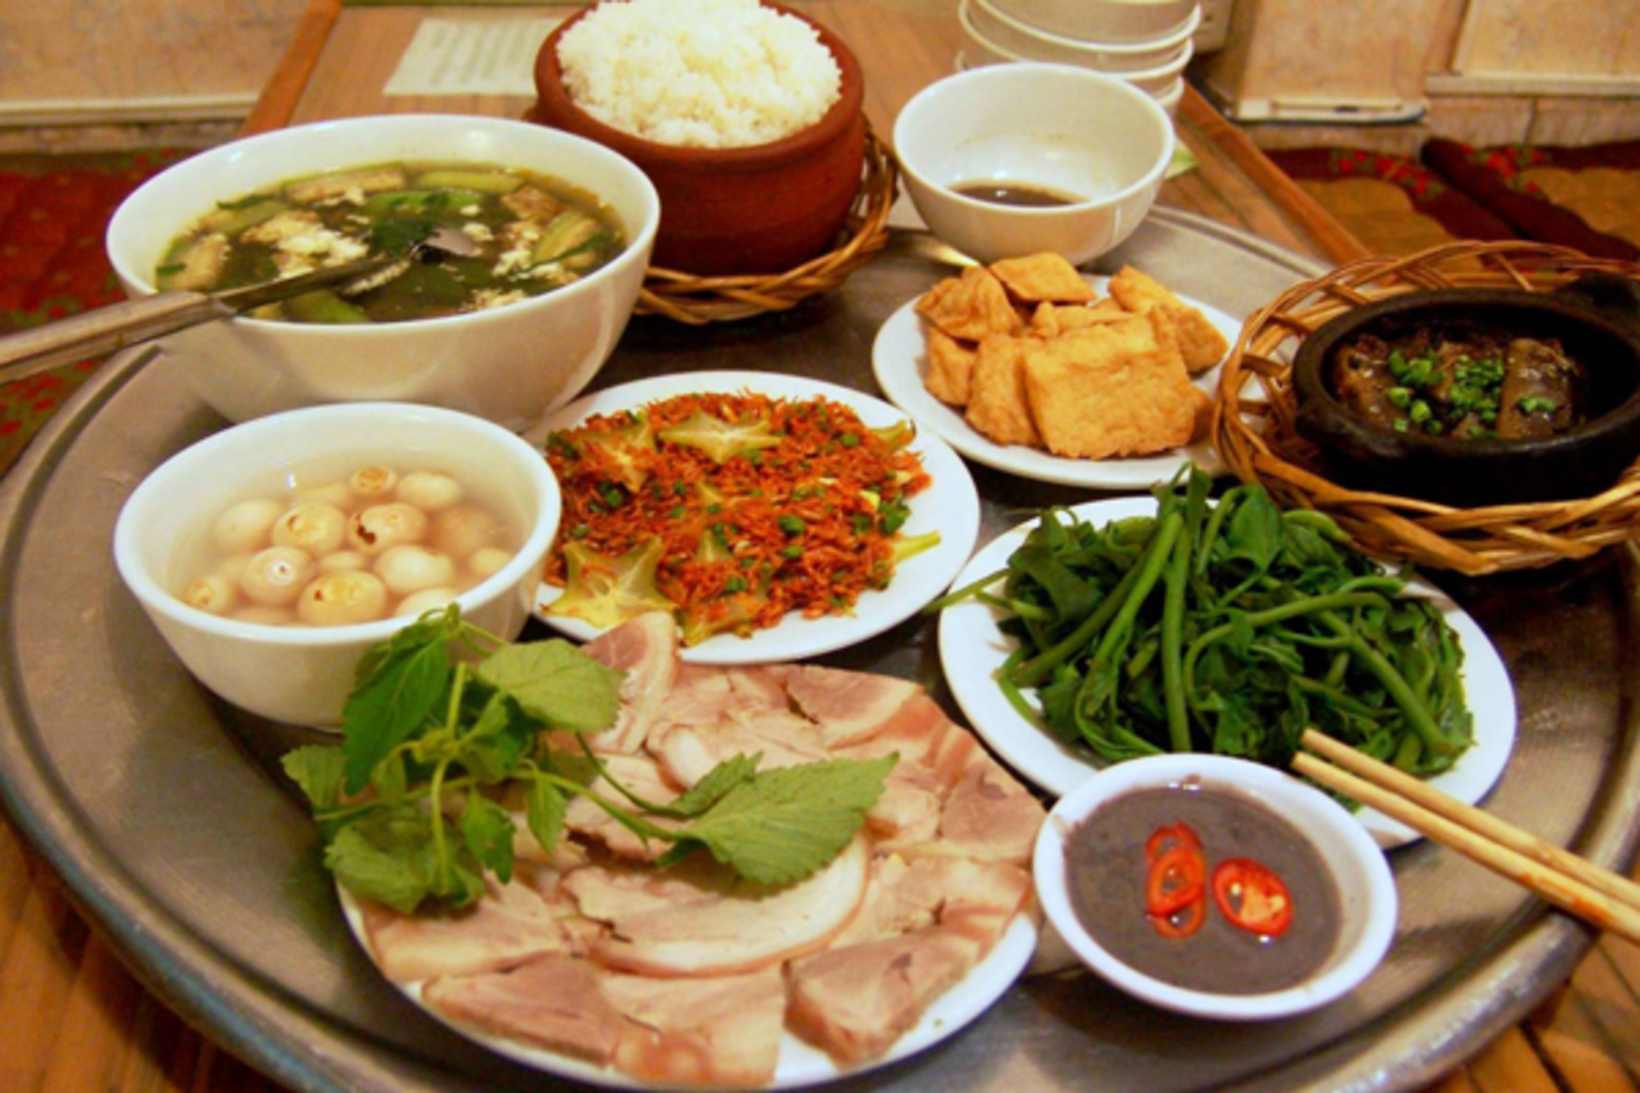 Is there anything I should take note on Vietnamese food & drink?